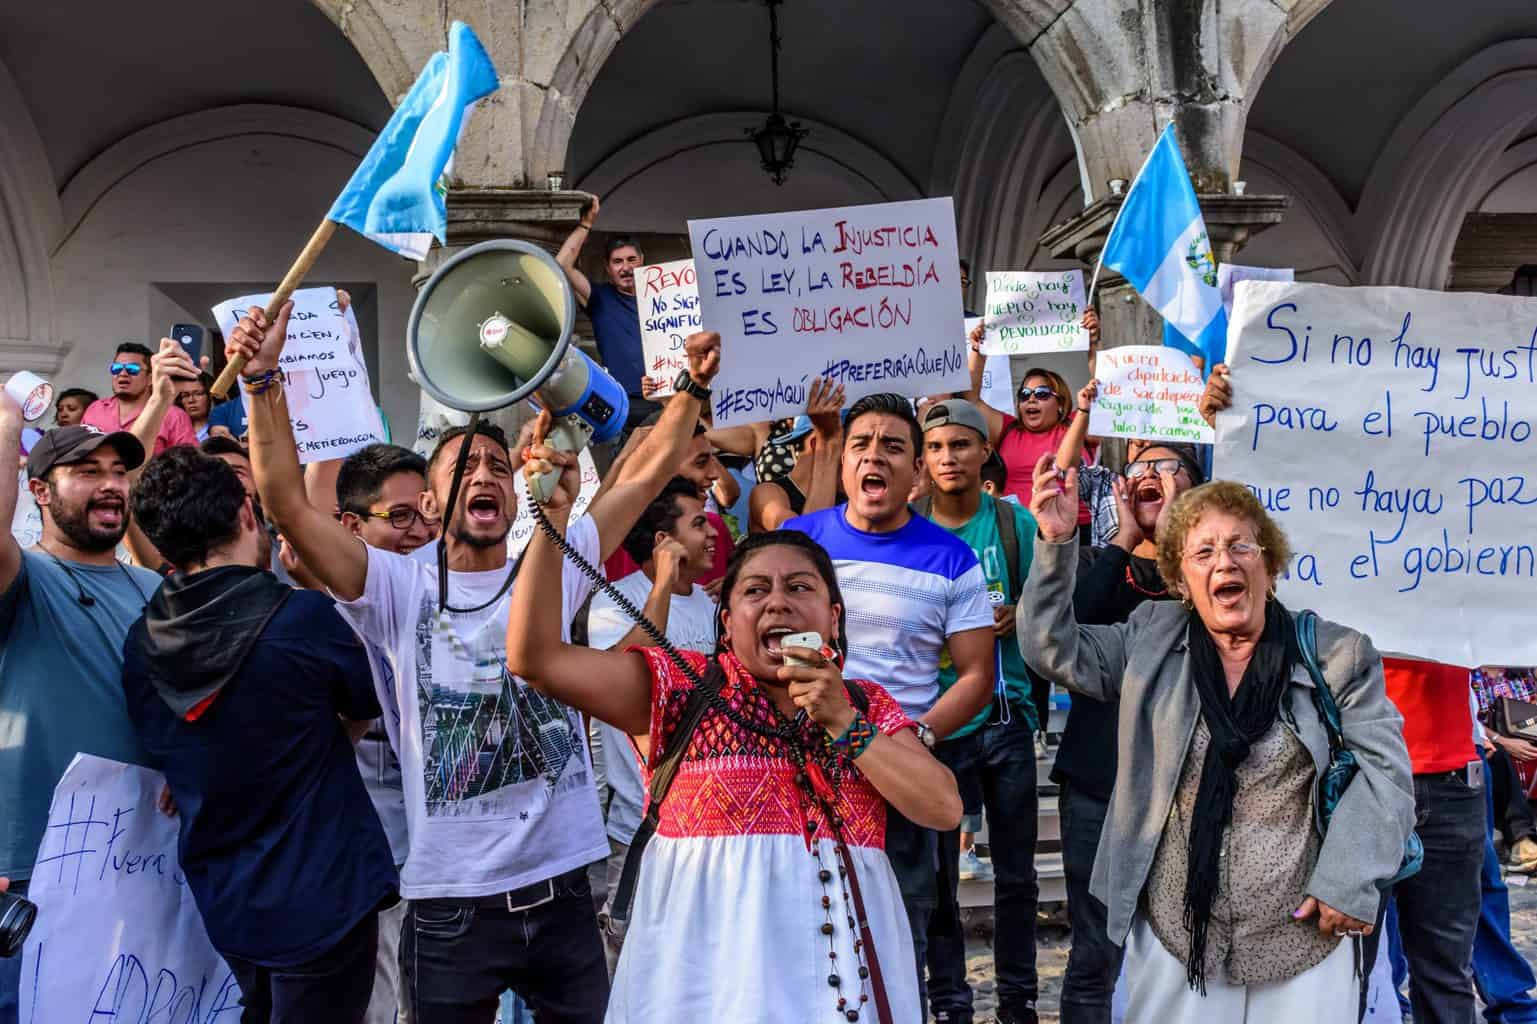 Guatemala: Playing the insider / outsider game to reform tax administration